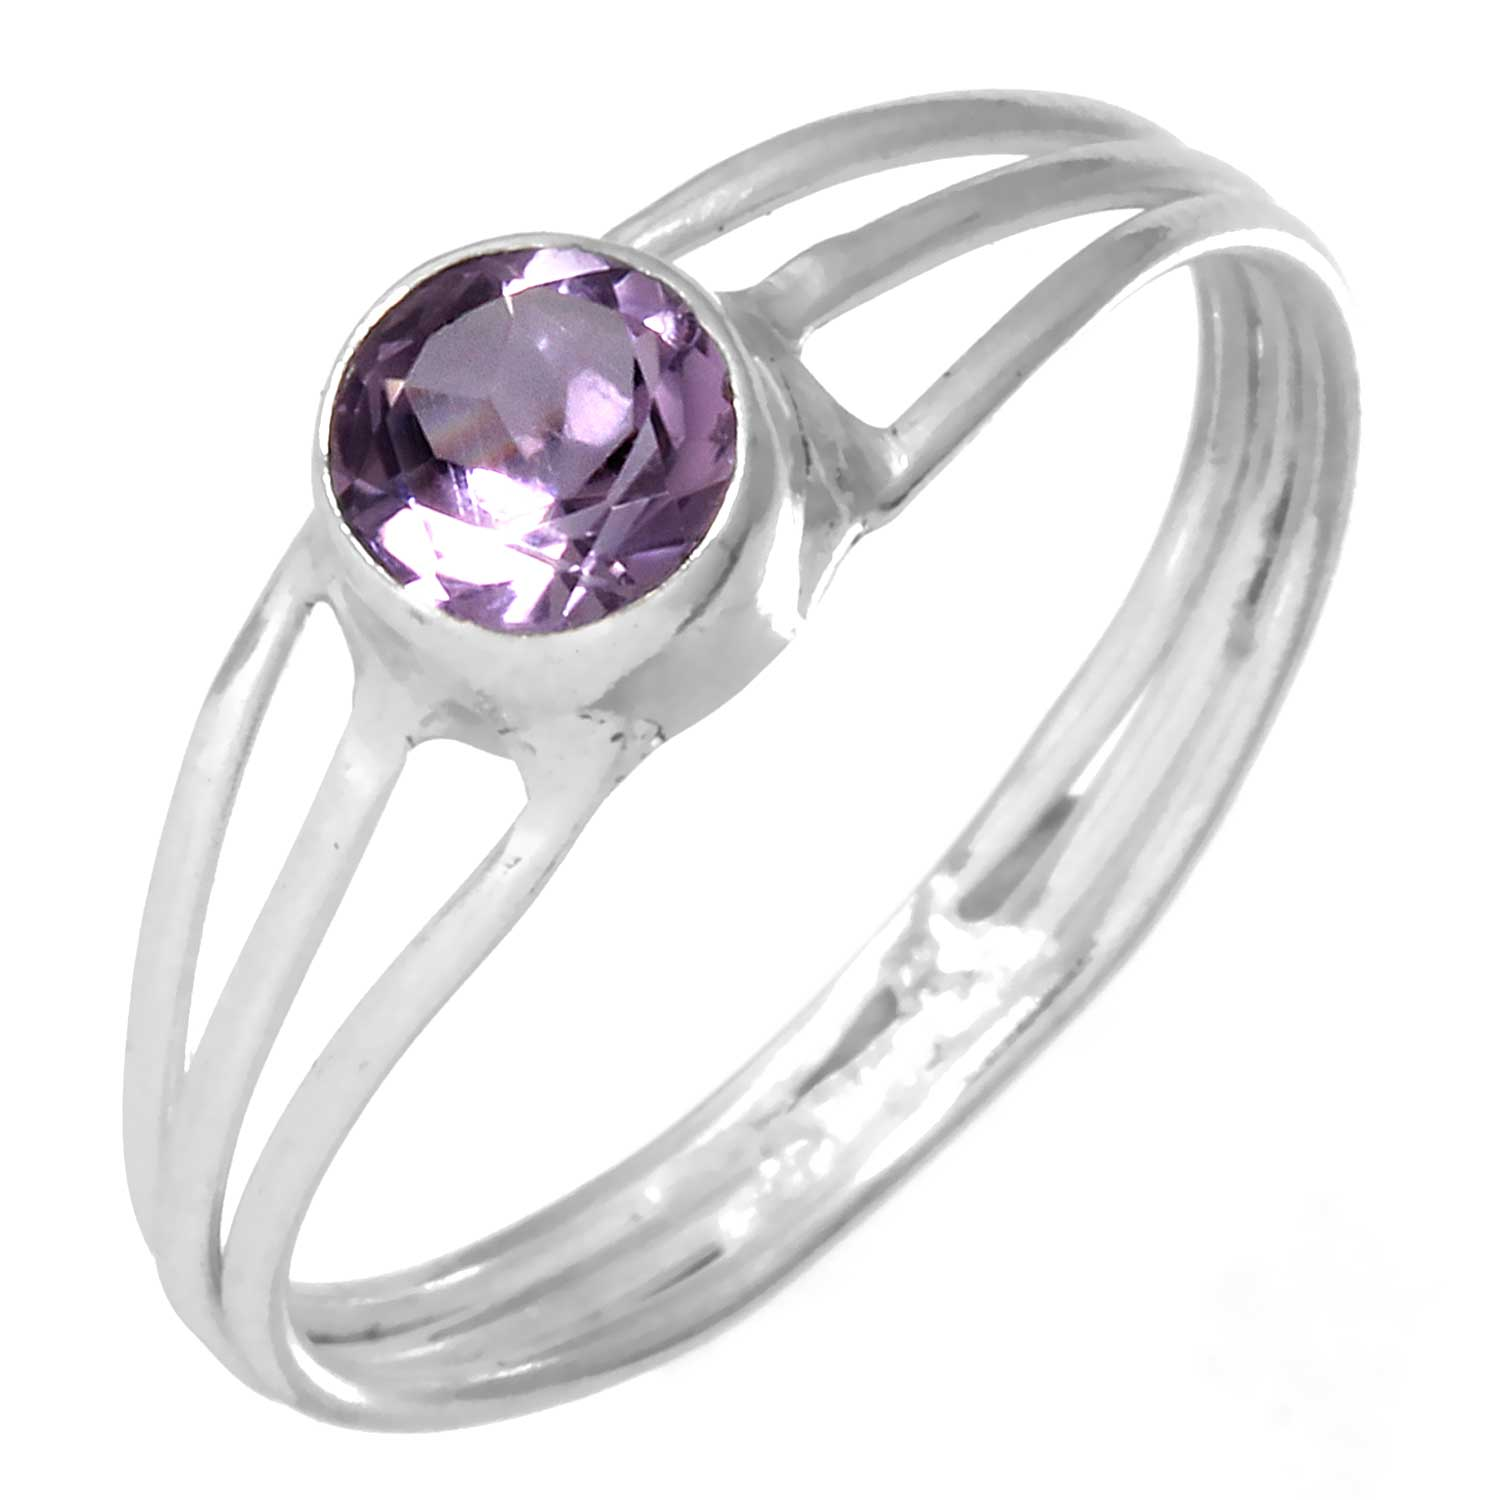 Wholesale Sterling Silver Gemstone Rings (Product ID = rg703amef)